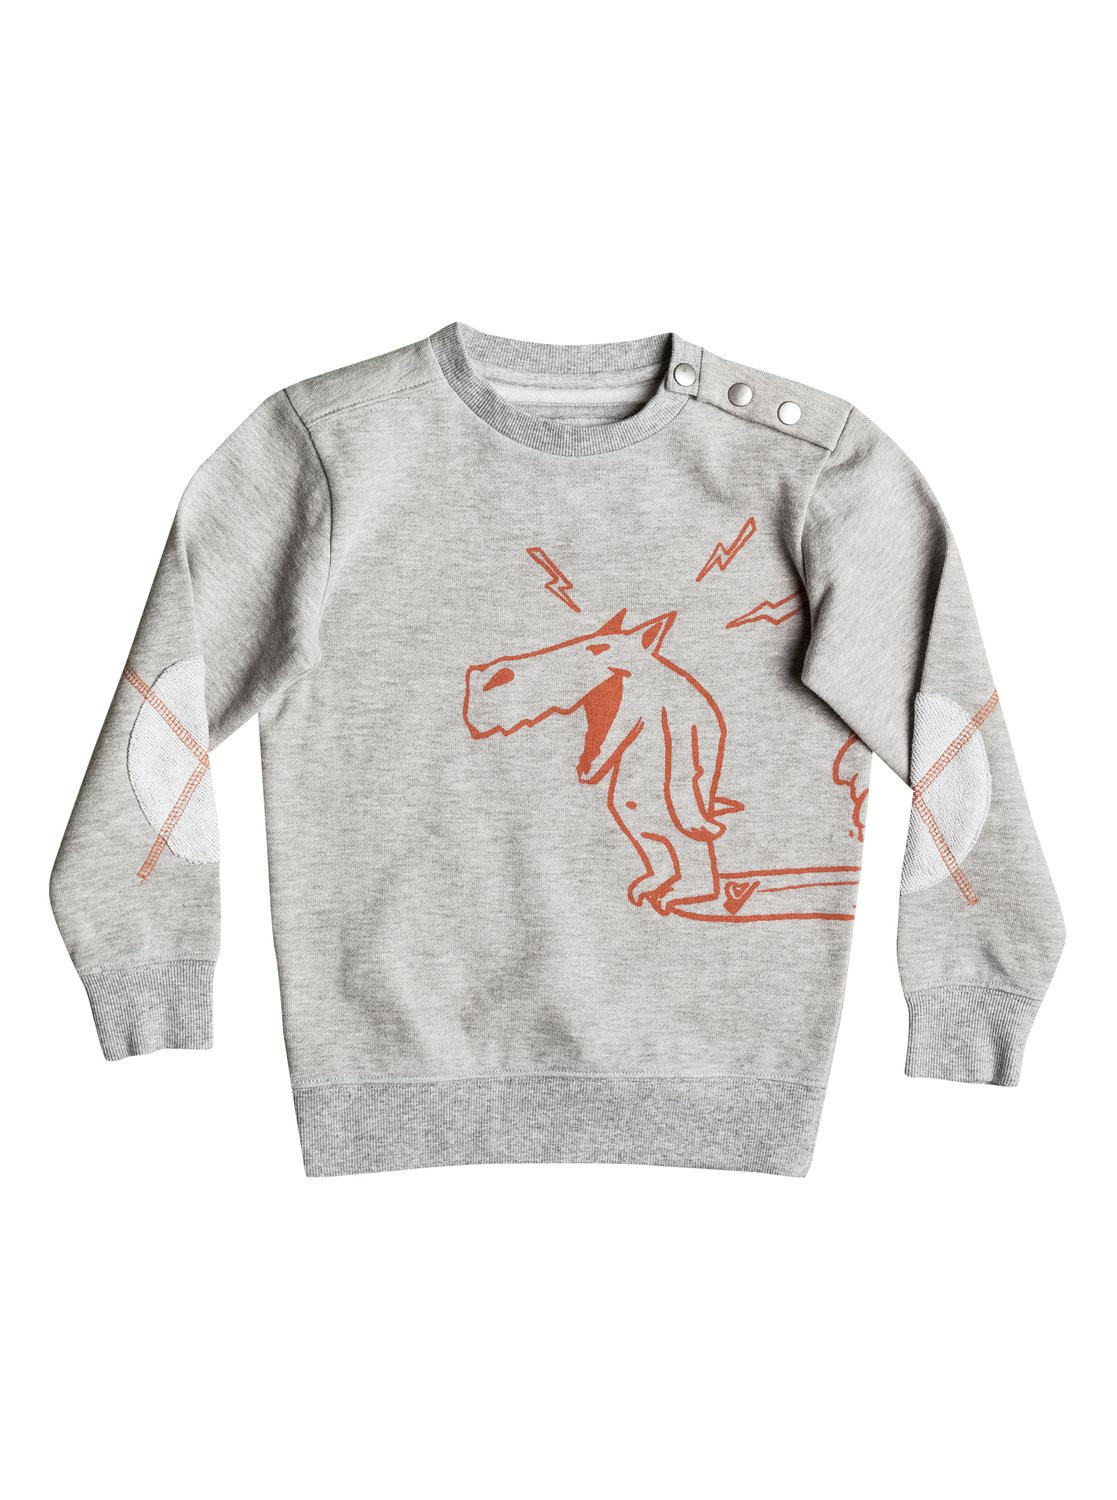 Толстовка Surfing Dog от Quiksilver RU